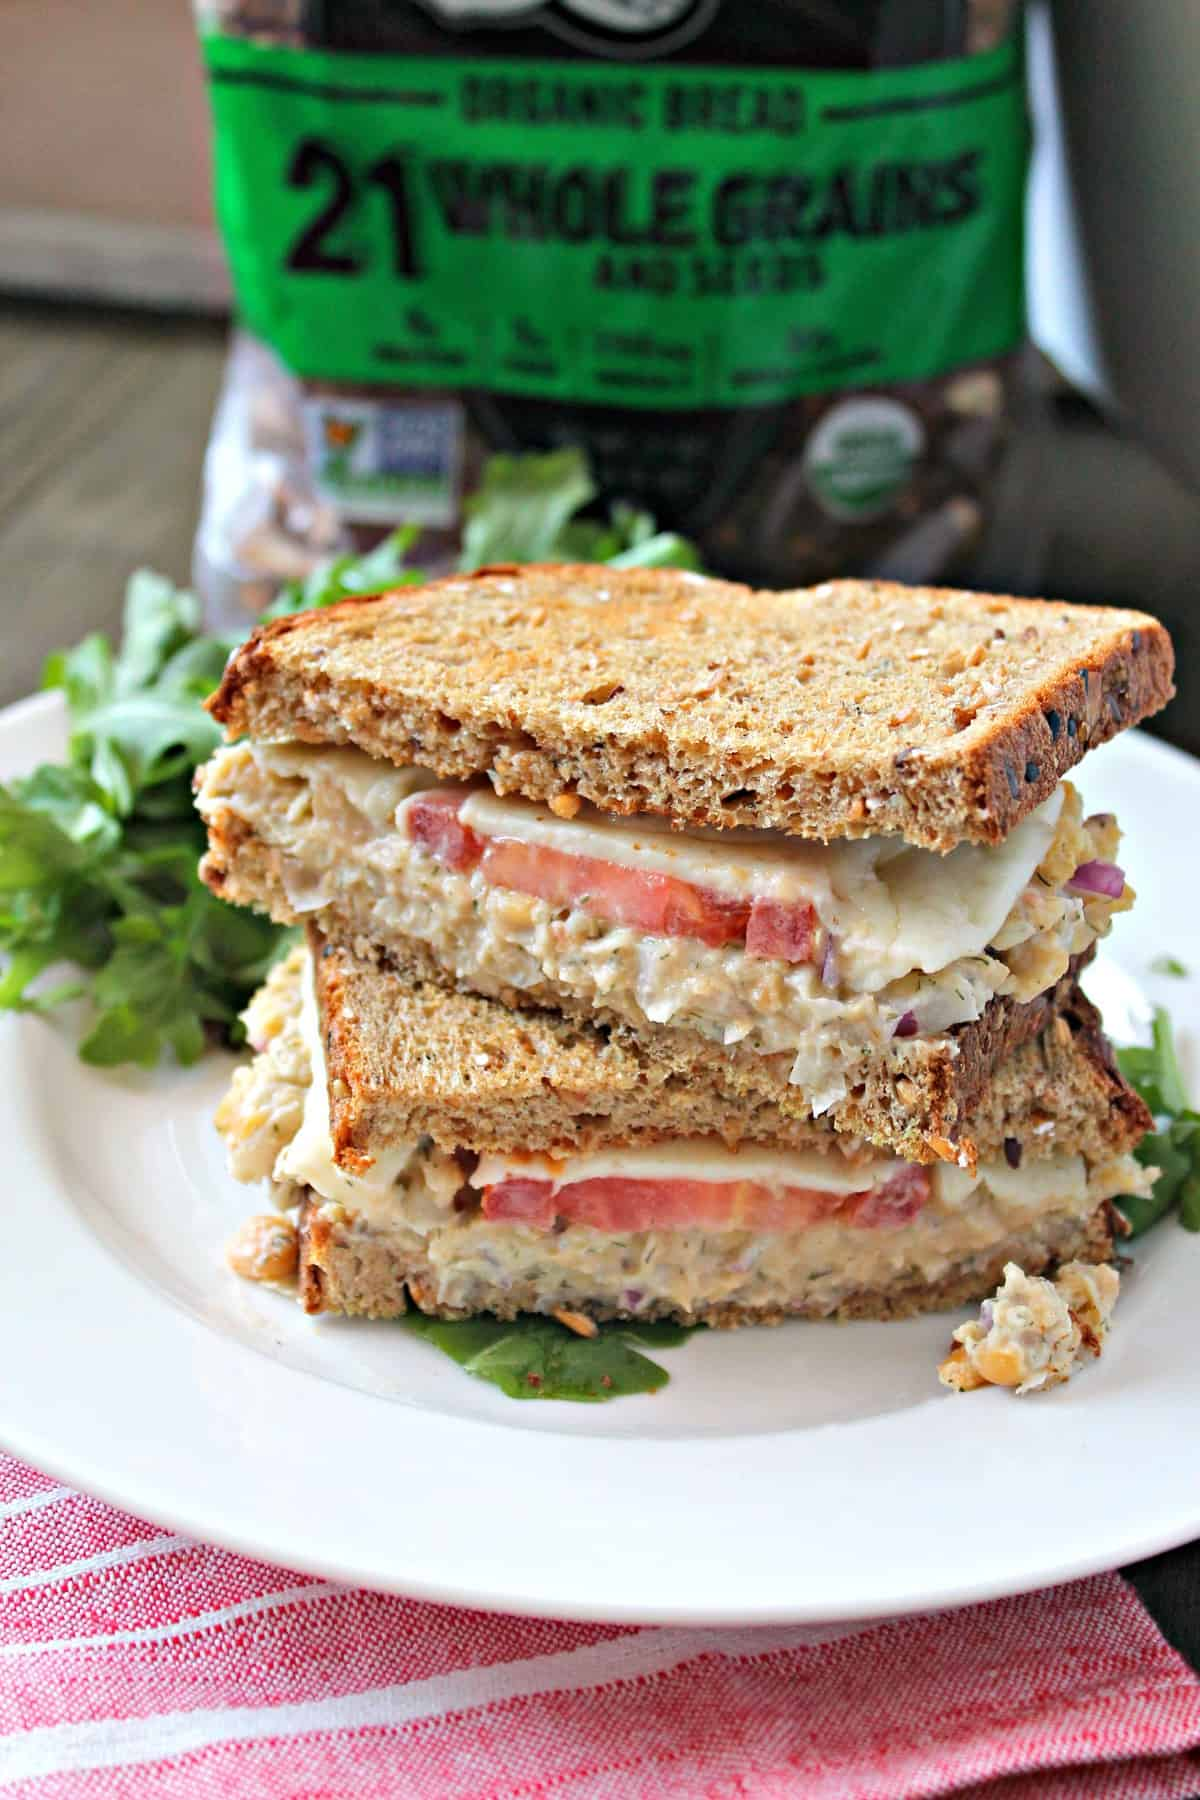 Chickpea Tuna Melt Sandwich! This vegetarian version of the classic diner sandwich makes a fantastic, protein-filled lunch. Made with mashed chickpeas and topped with gooey cheese, no one will miss the tuna in this clever, satisfying knock-off.